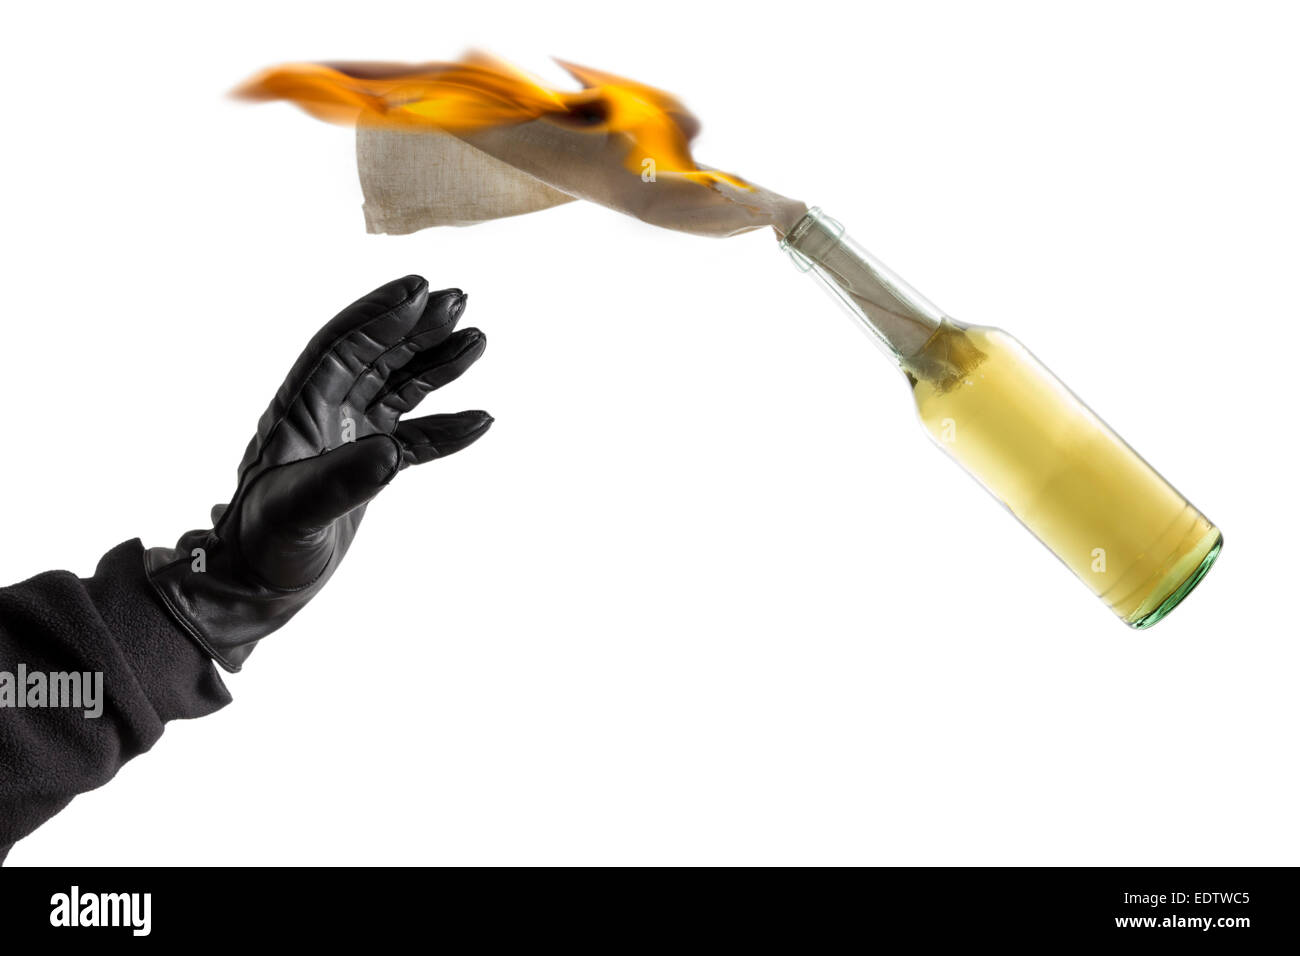 Arm in black sleeve with black leather glove thwowing a Molotov Cocktail with burning fuse, isolated on white background - Stock Image